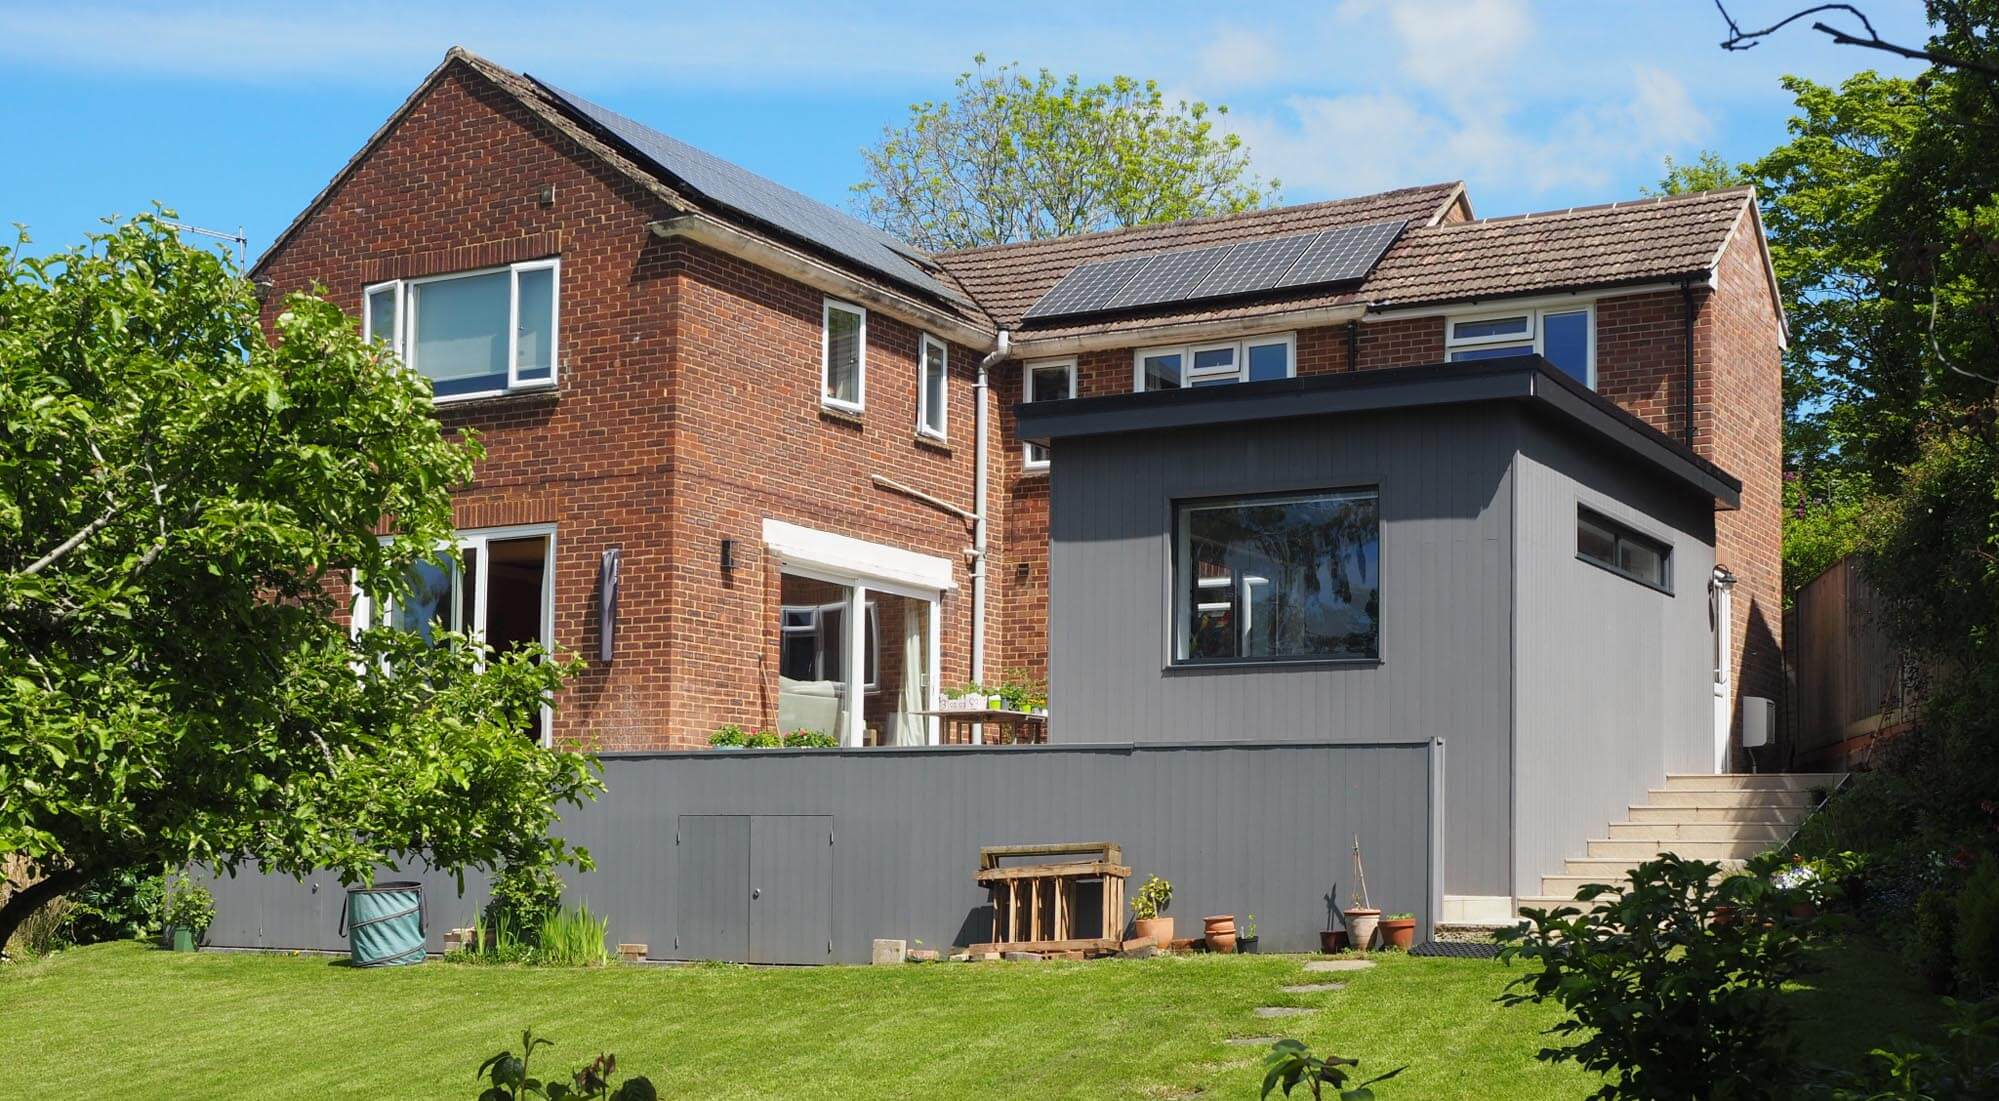 Studio extension Hyperion cladding in Stone grey